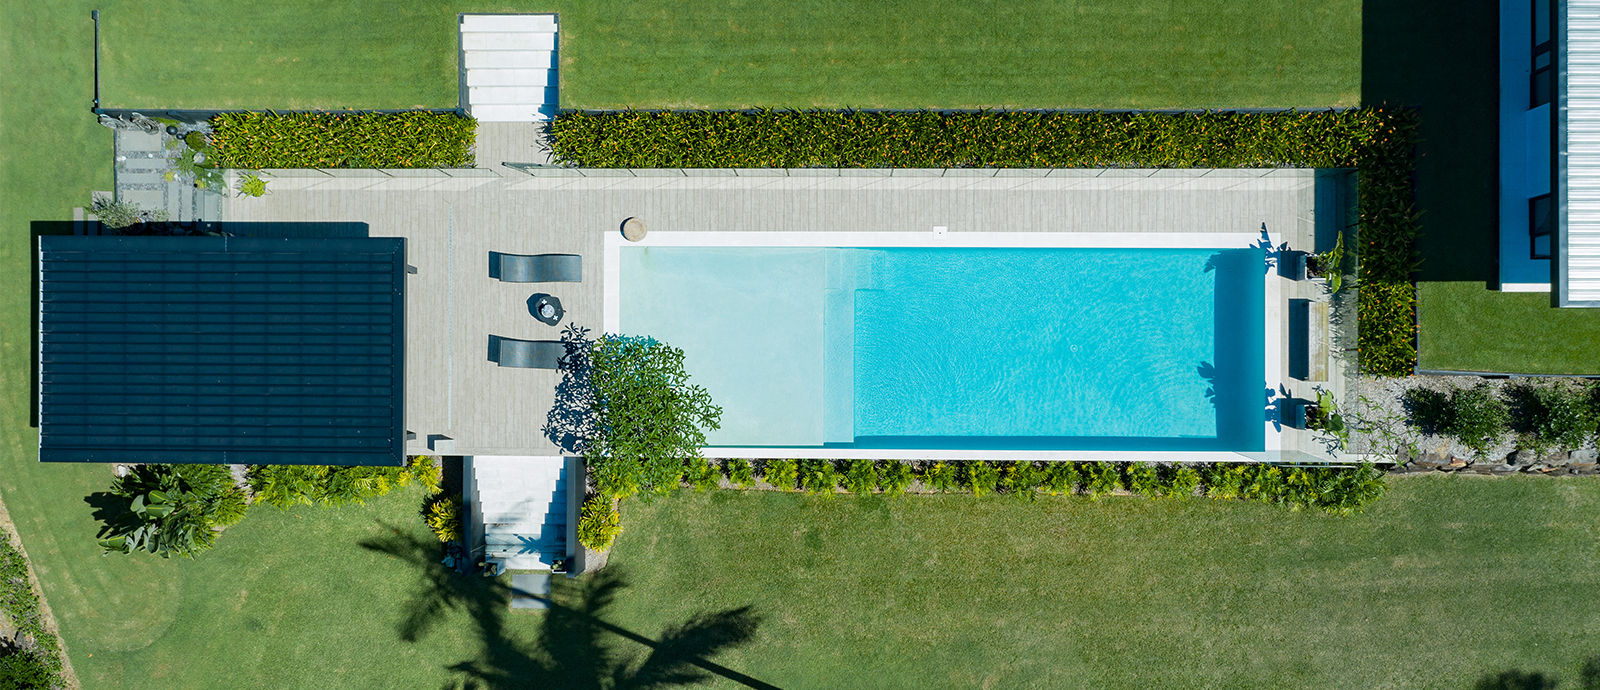 sarah_waller_design_hero_7_doonan_glasshouse_pool_drone_image